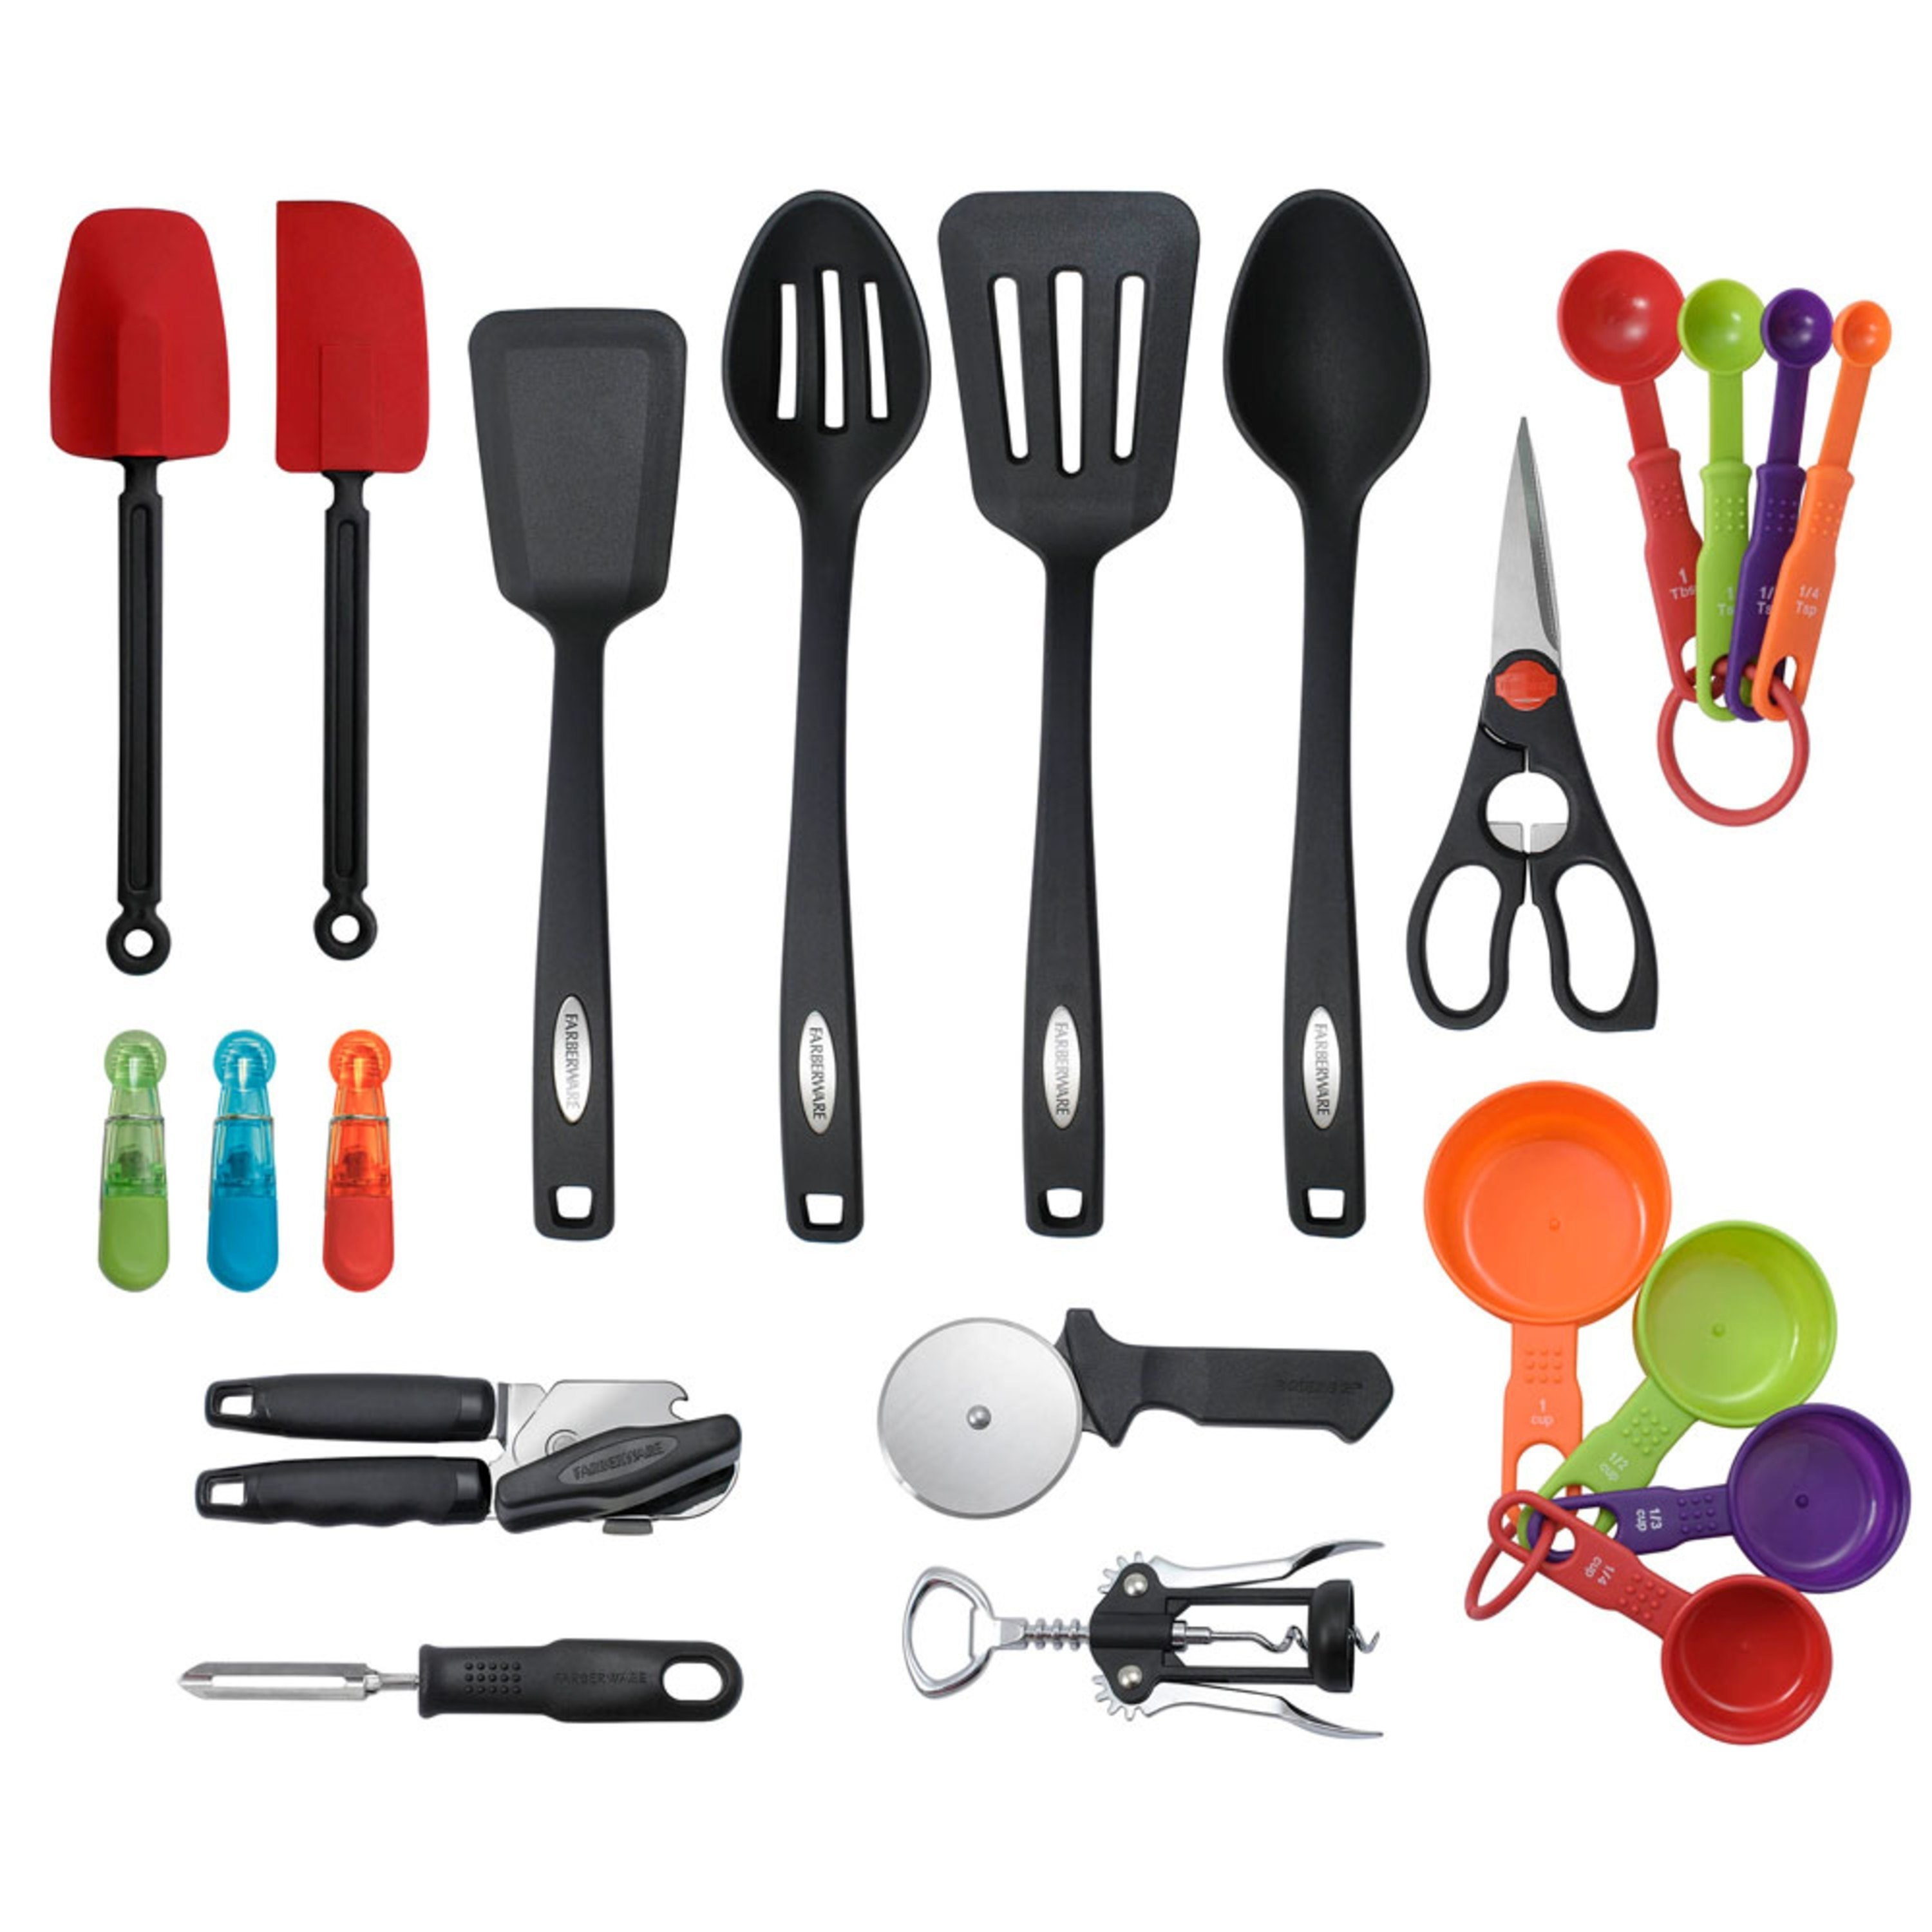 kitchen tools in which the majority are black while the measuring tools are orange green purple or red